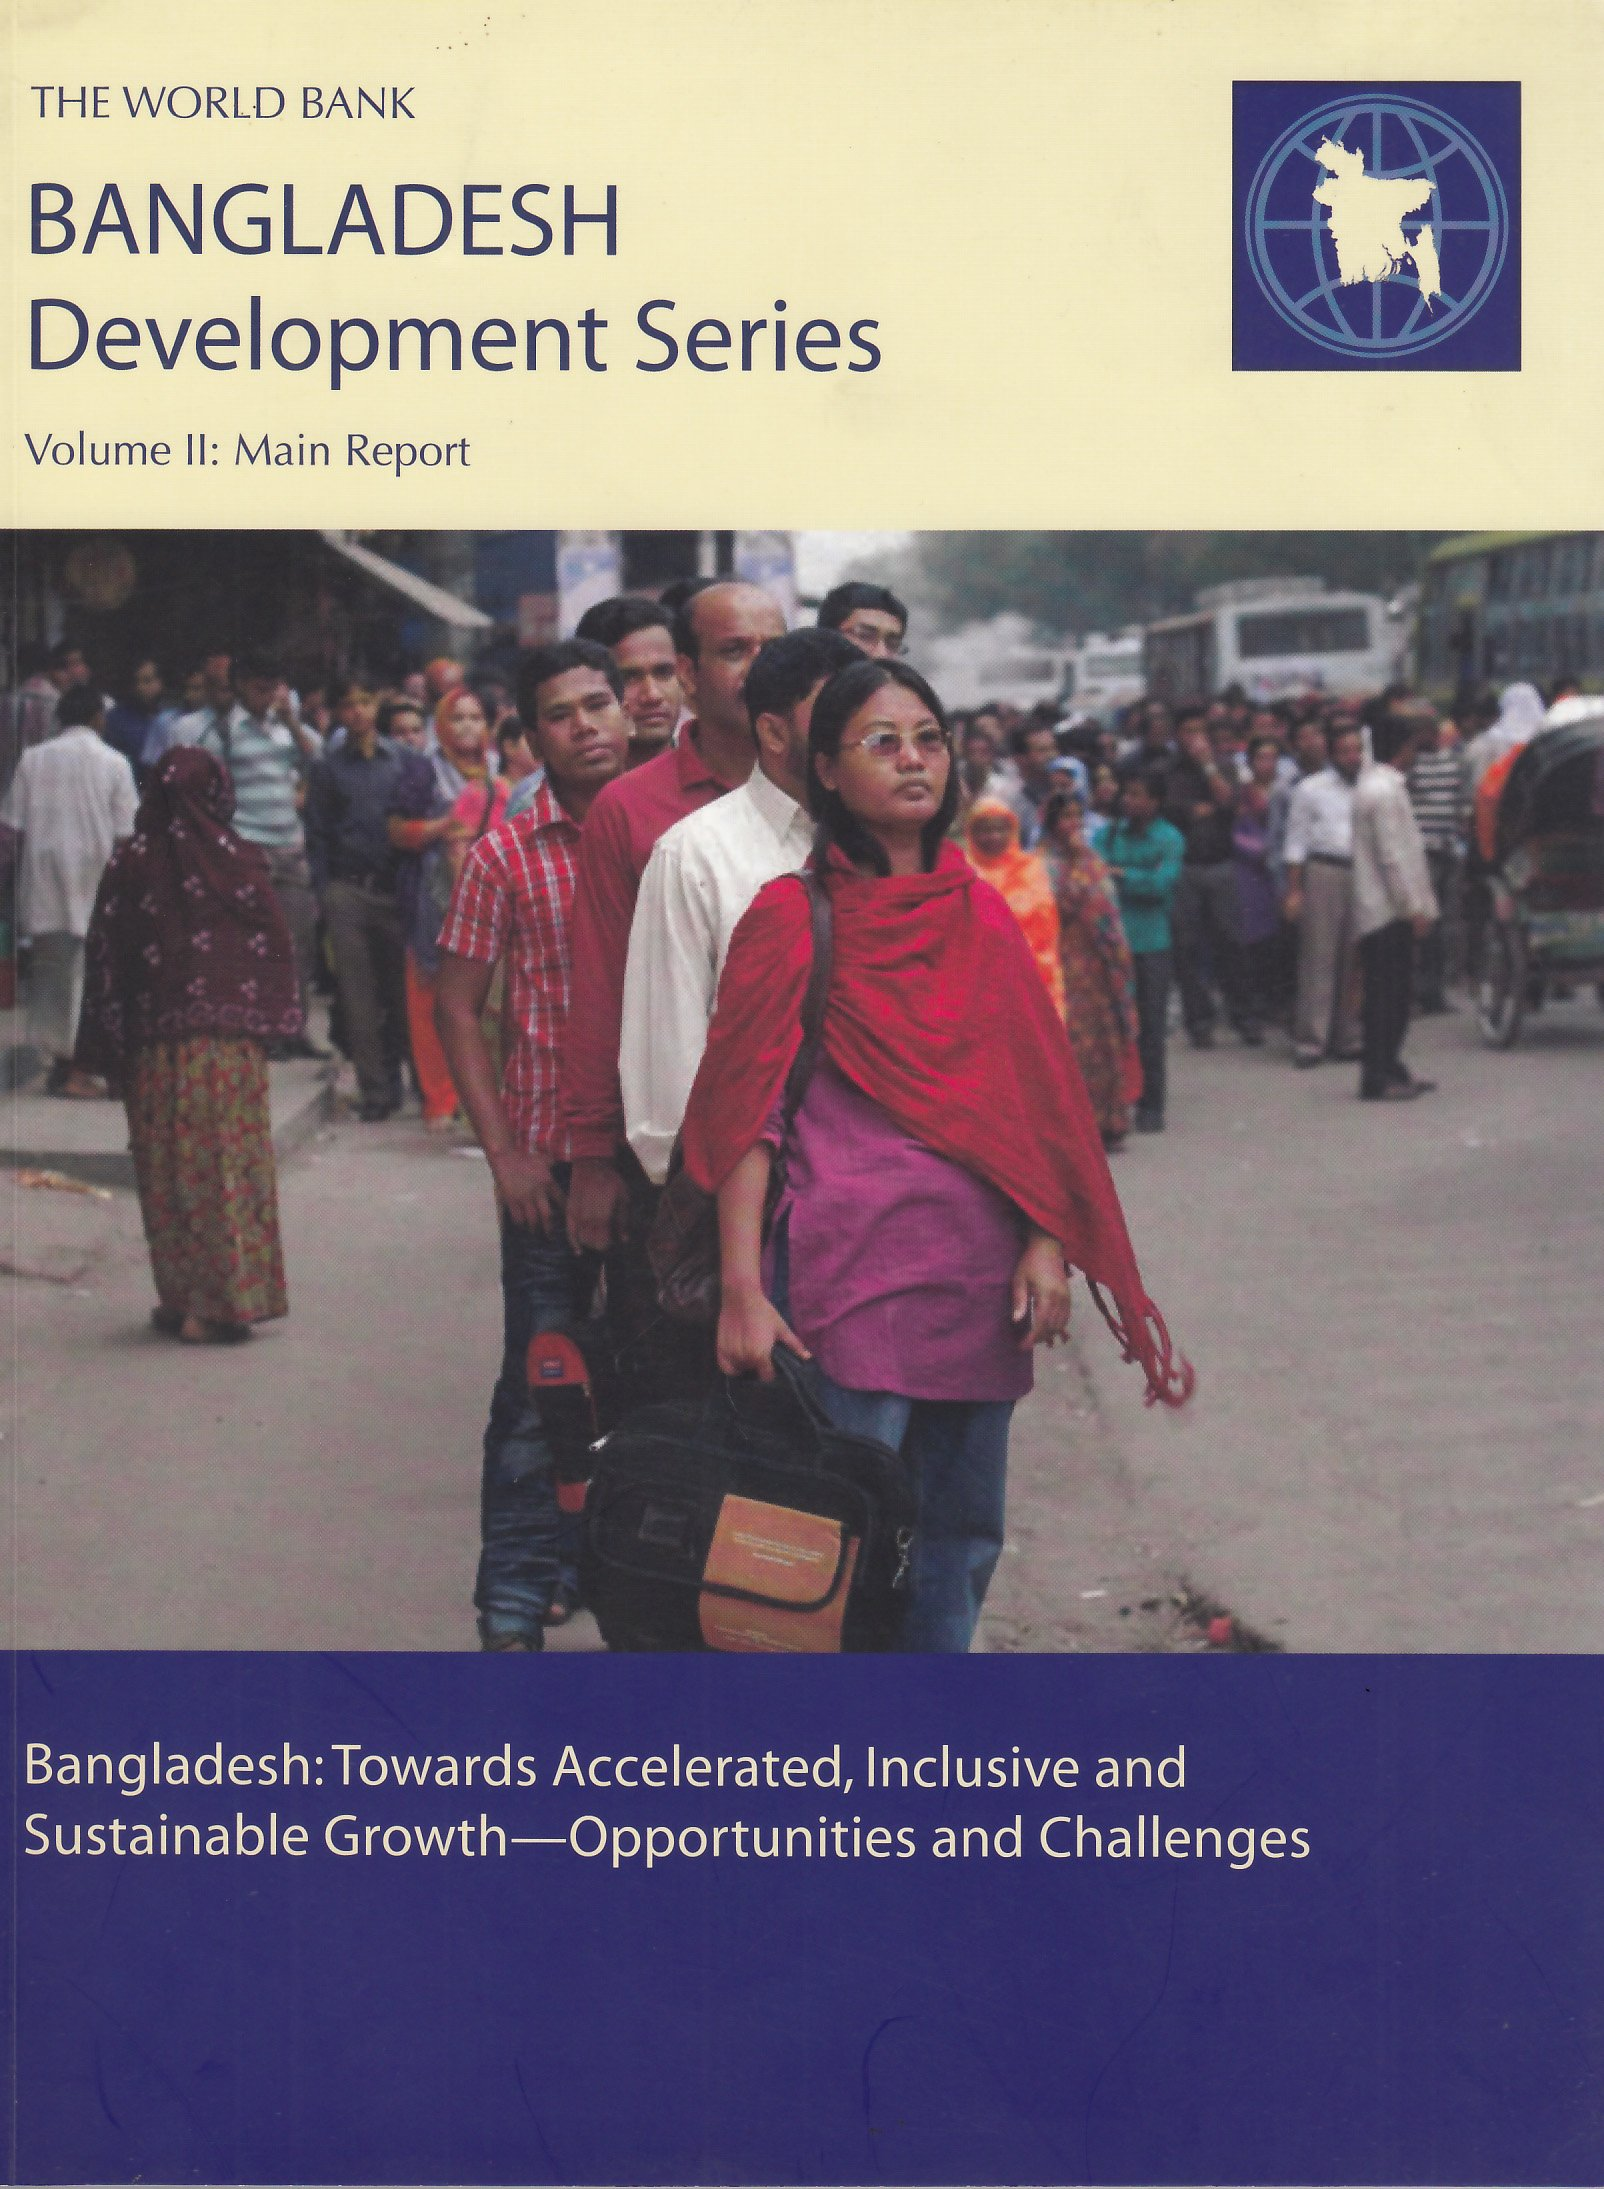 Download Bangladesh Towards Accelerated, Inclusive and Sustainable Growth: Opportunities and Challenges, Volume II: Main Report pdf